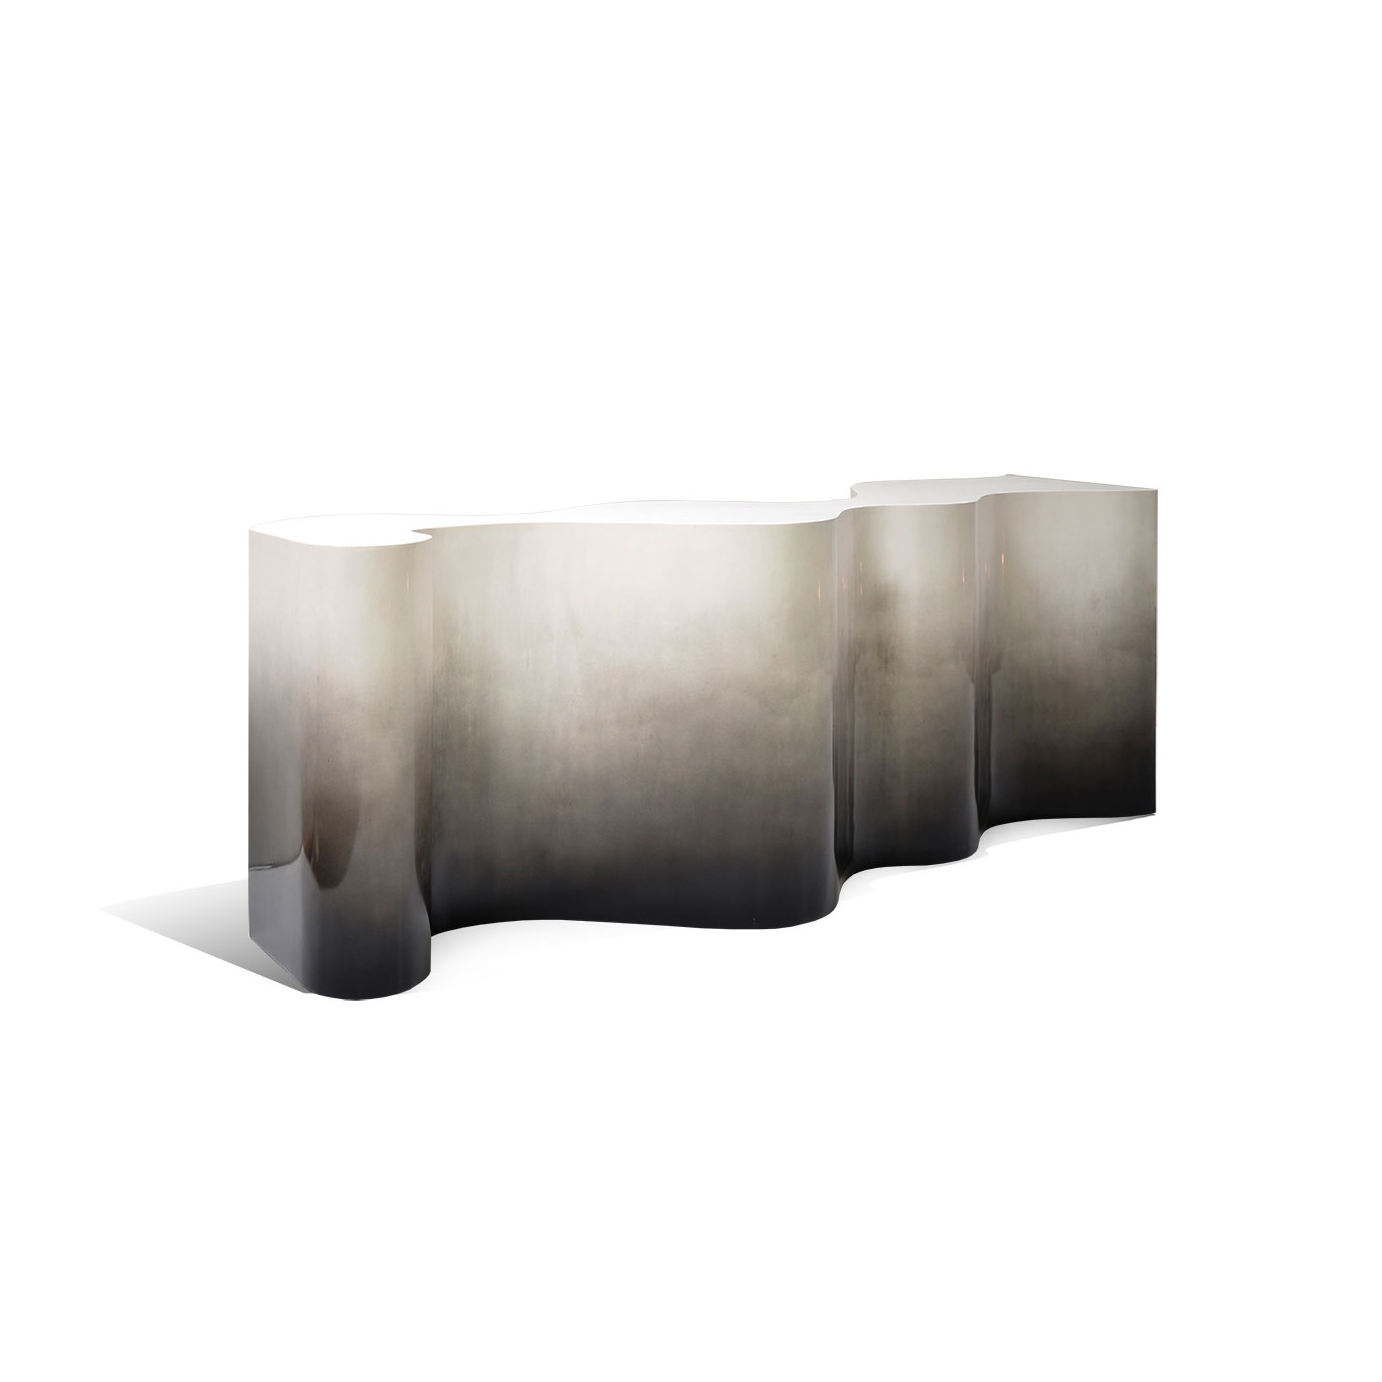 Undulated Console Table by Scala Luxury